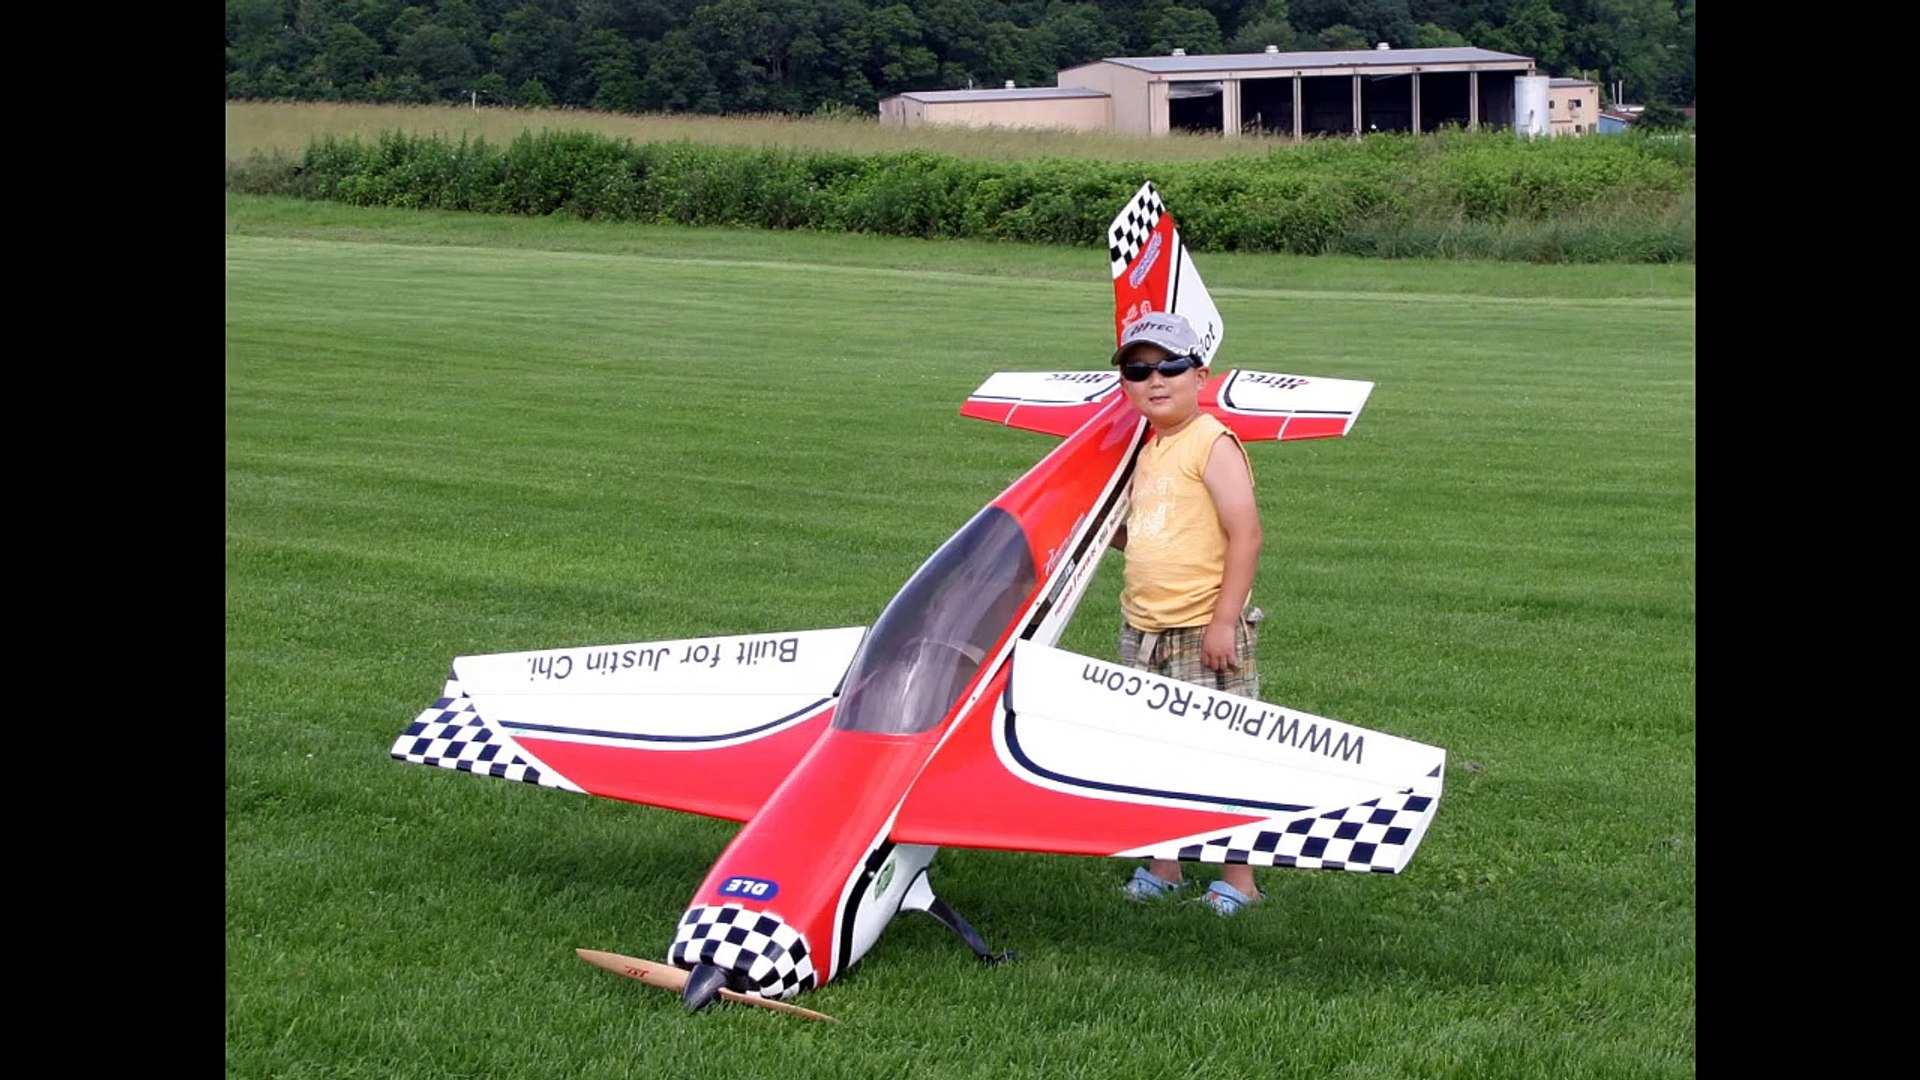 6 Year Old Justin Jee(Chi) Flying Pilot-RC Extra300 30% RC Airplane - June  28th, 2009